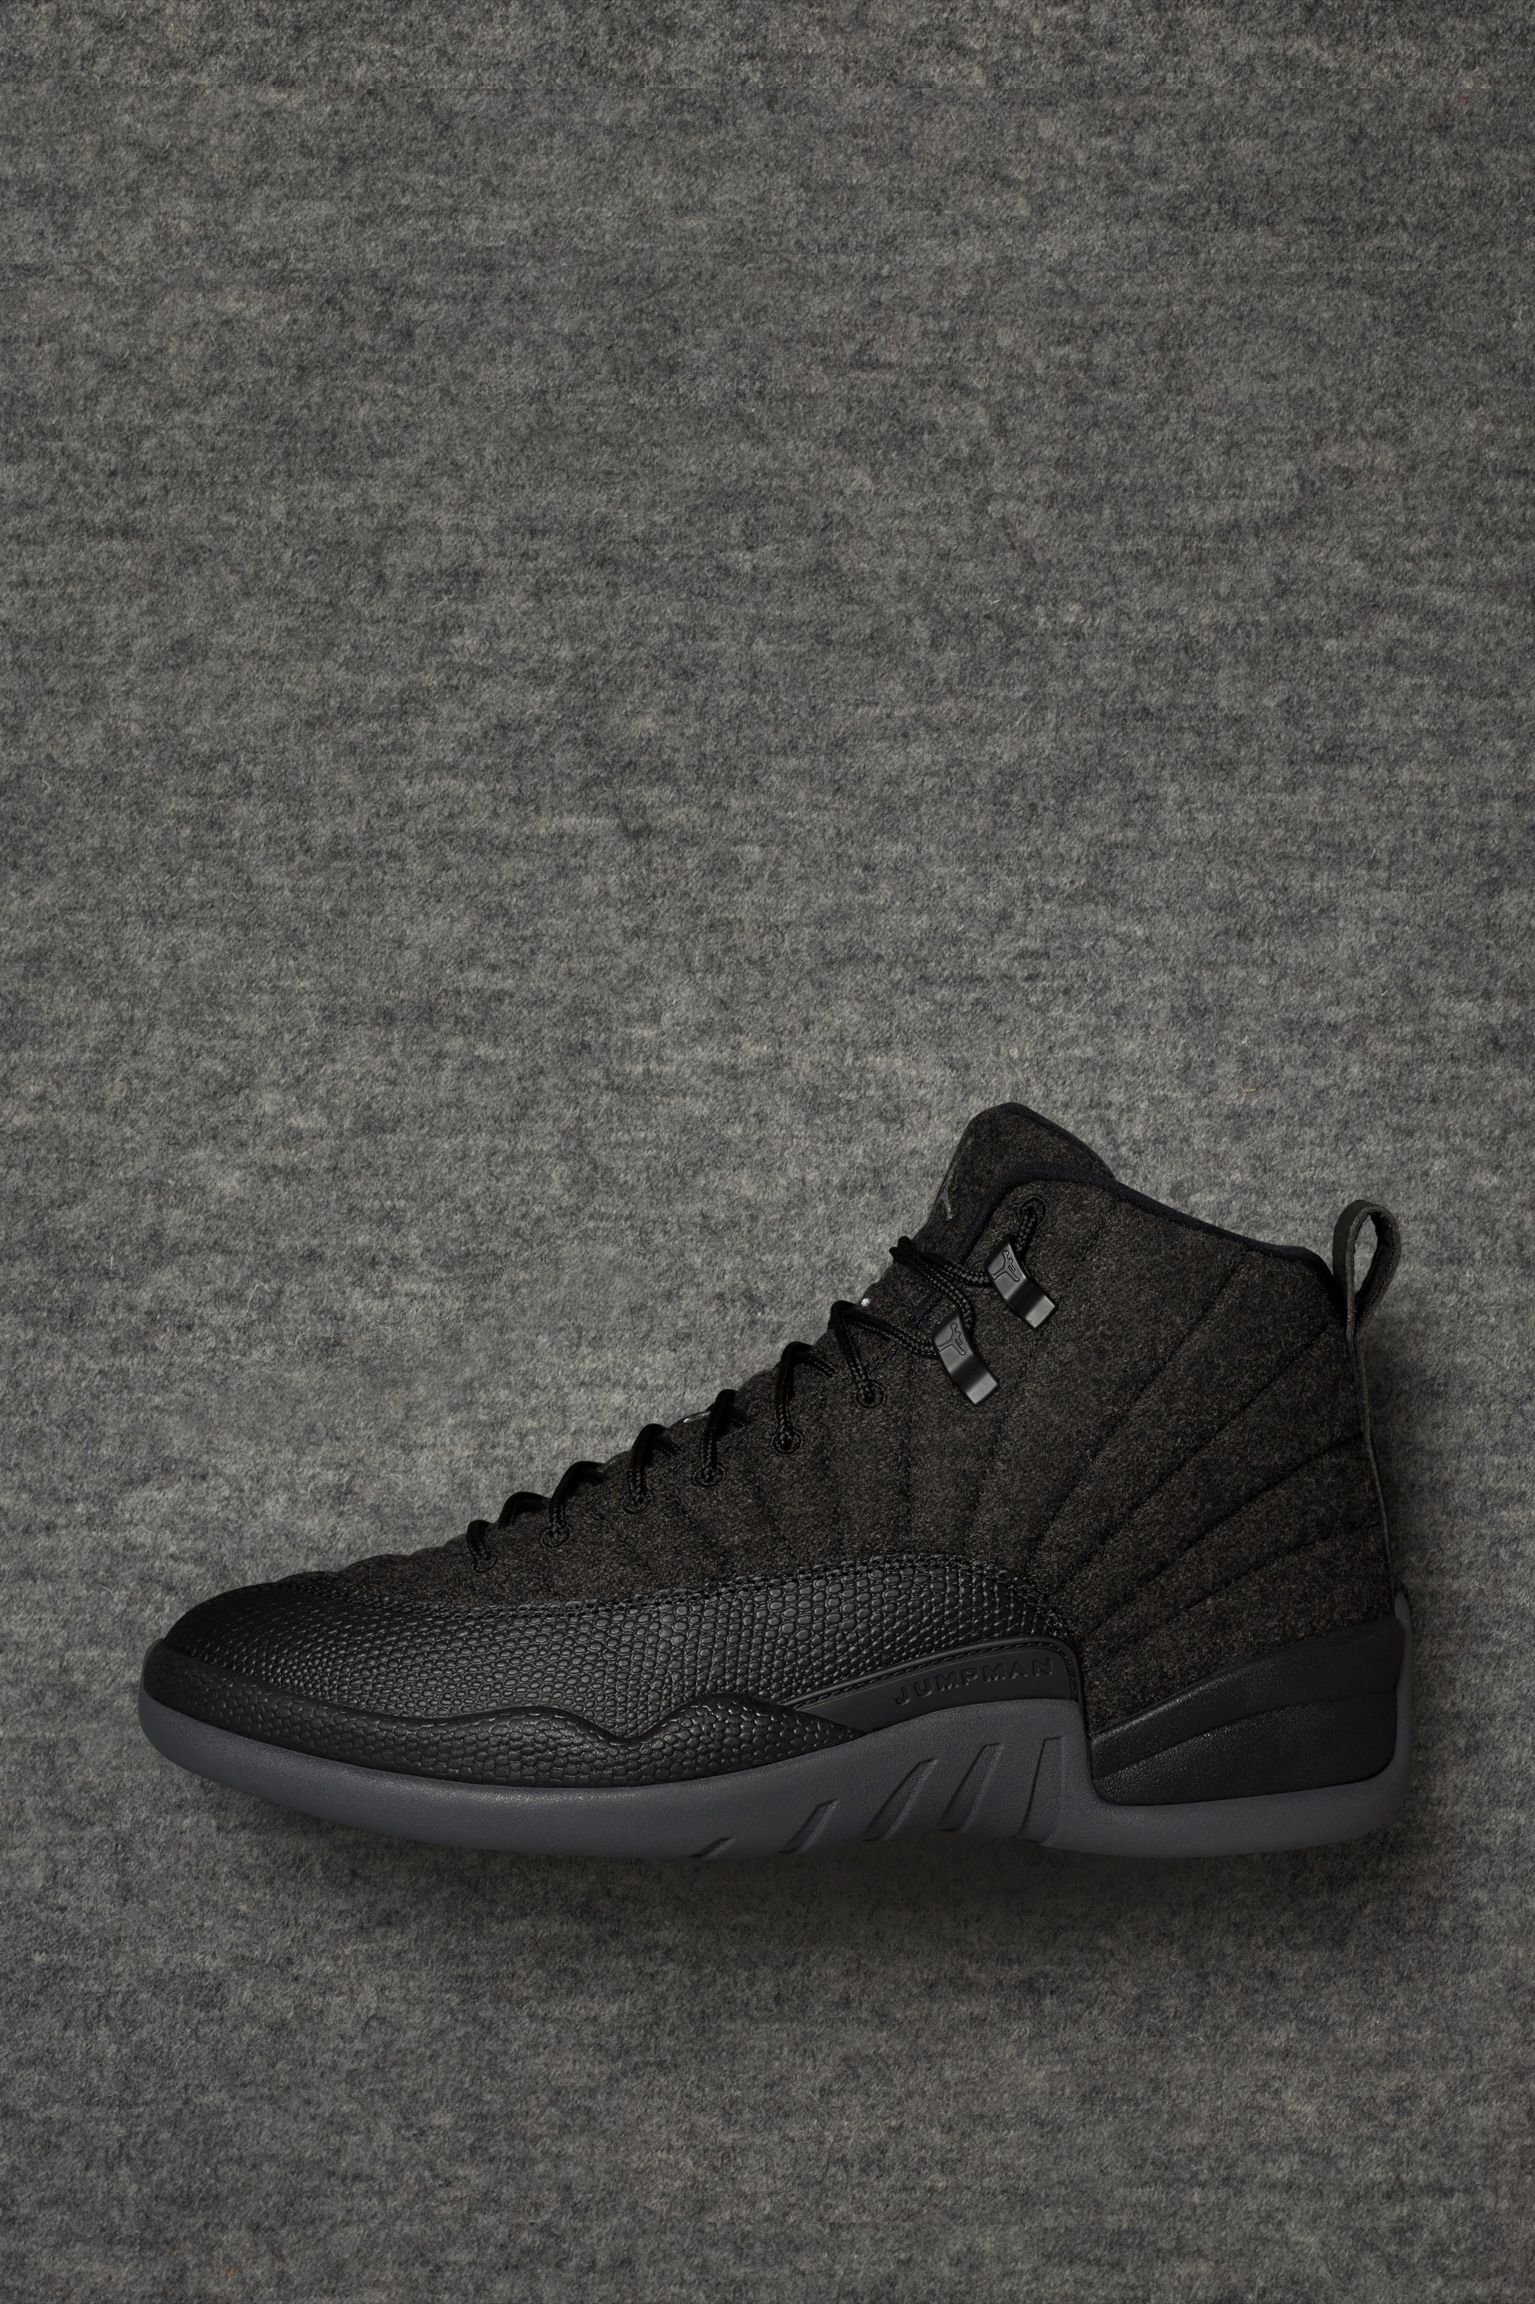 the best attitude f63b1 19160 Air Jordan 12 Retro Wool  Dark Grey   Black  Release Date. Nike⁠+ SNKRS